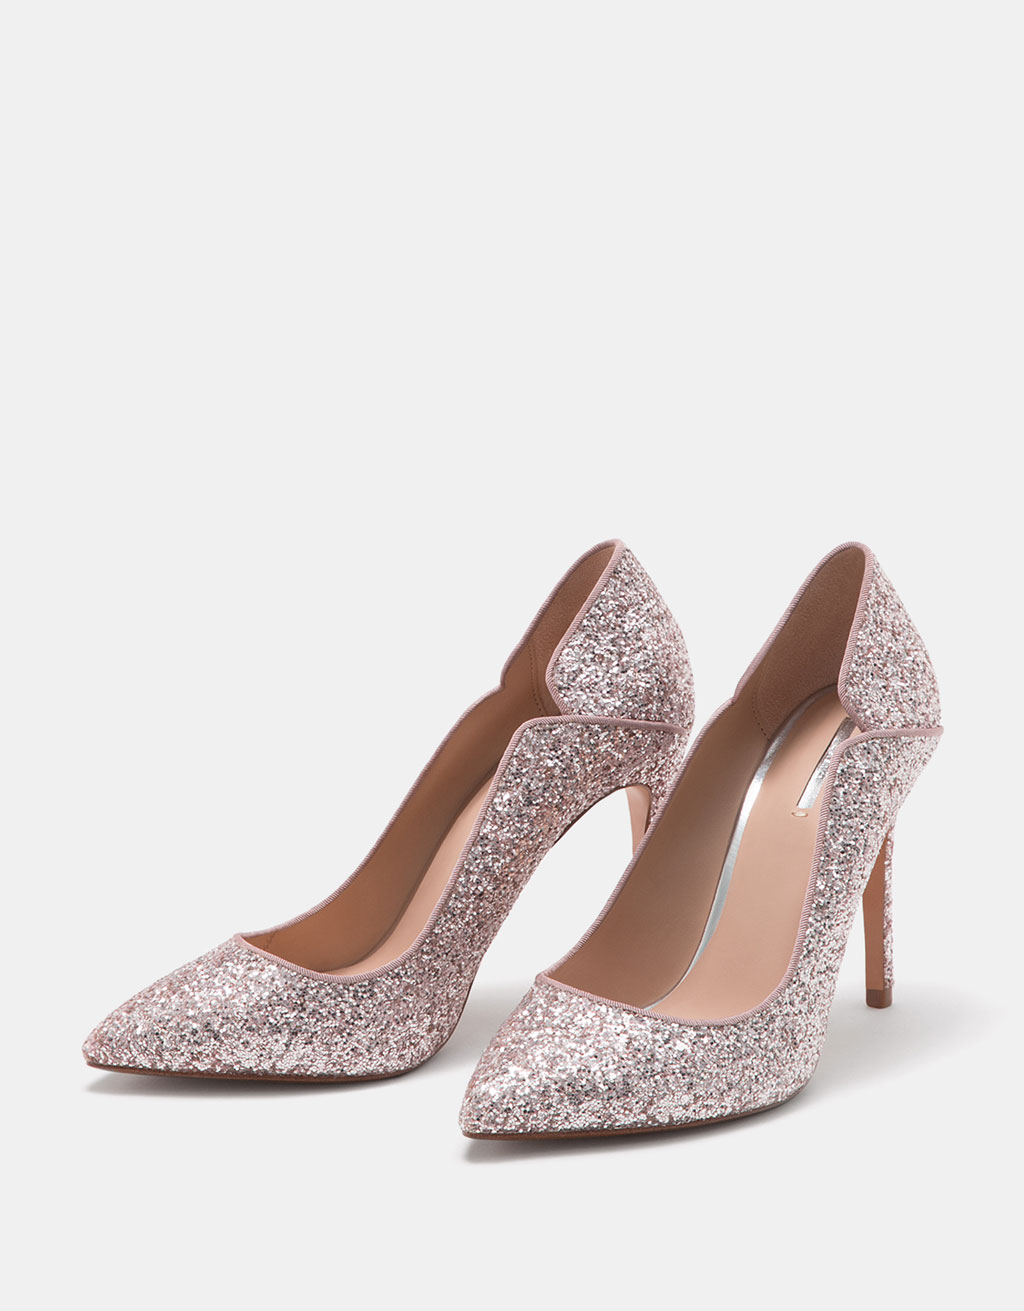 Shimmery stiletto heel shoes